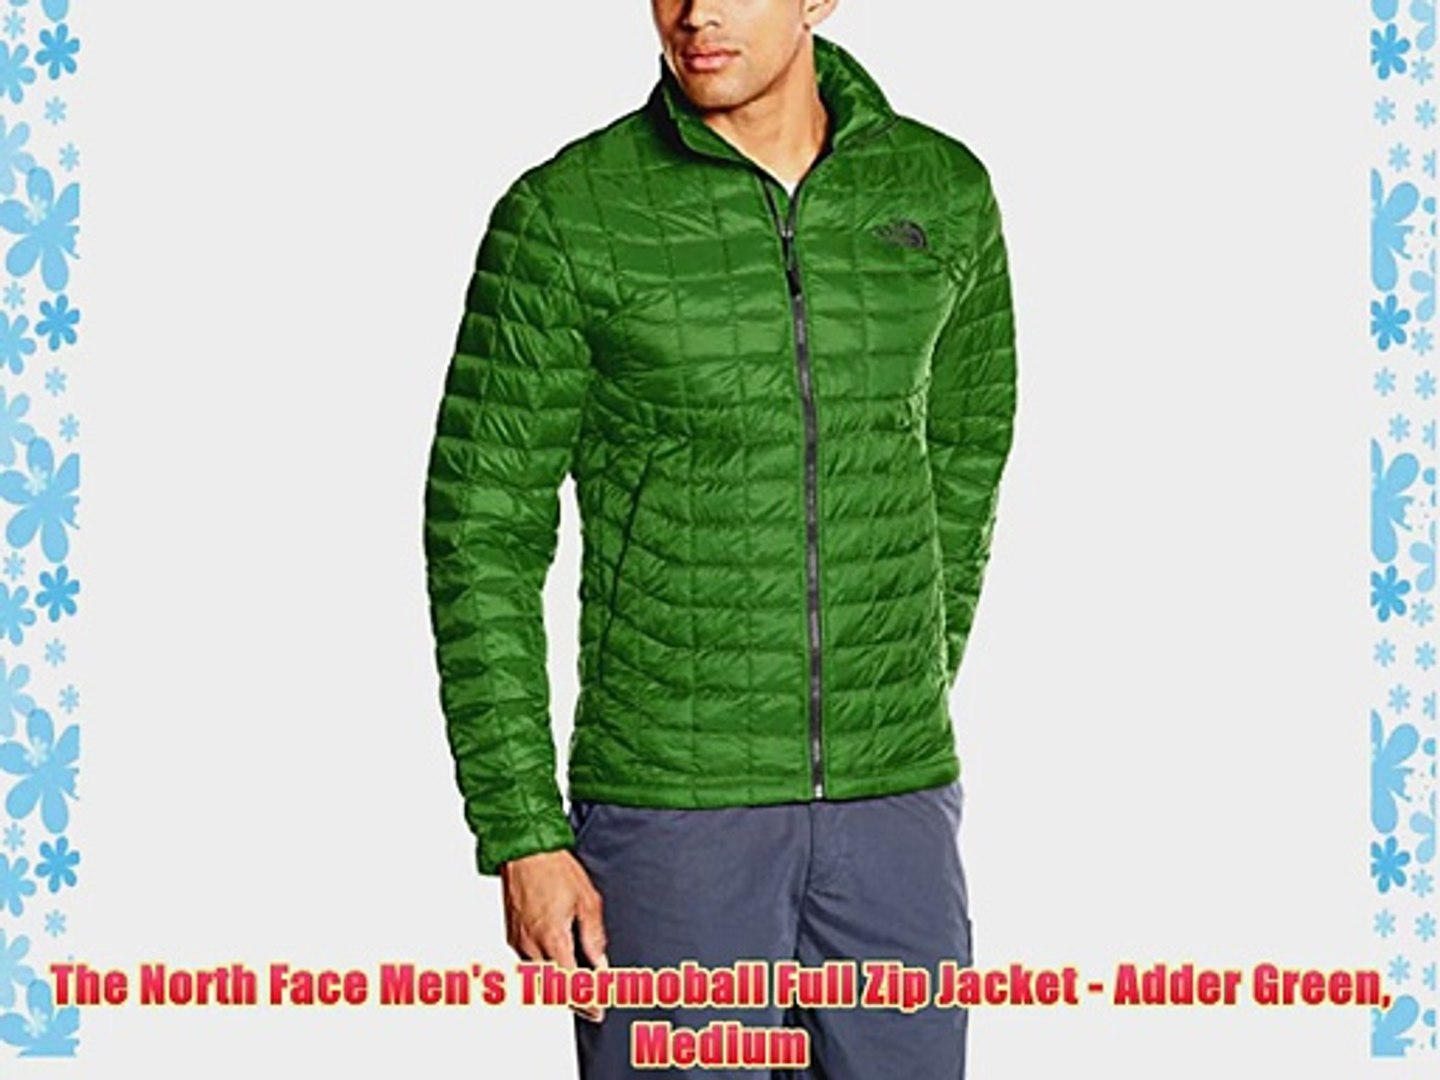 The North Face Men's Thermoball Full Zip Jacket Adder Green Medium